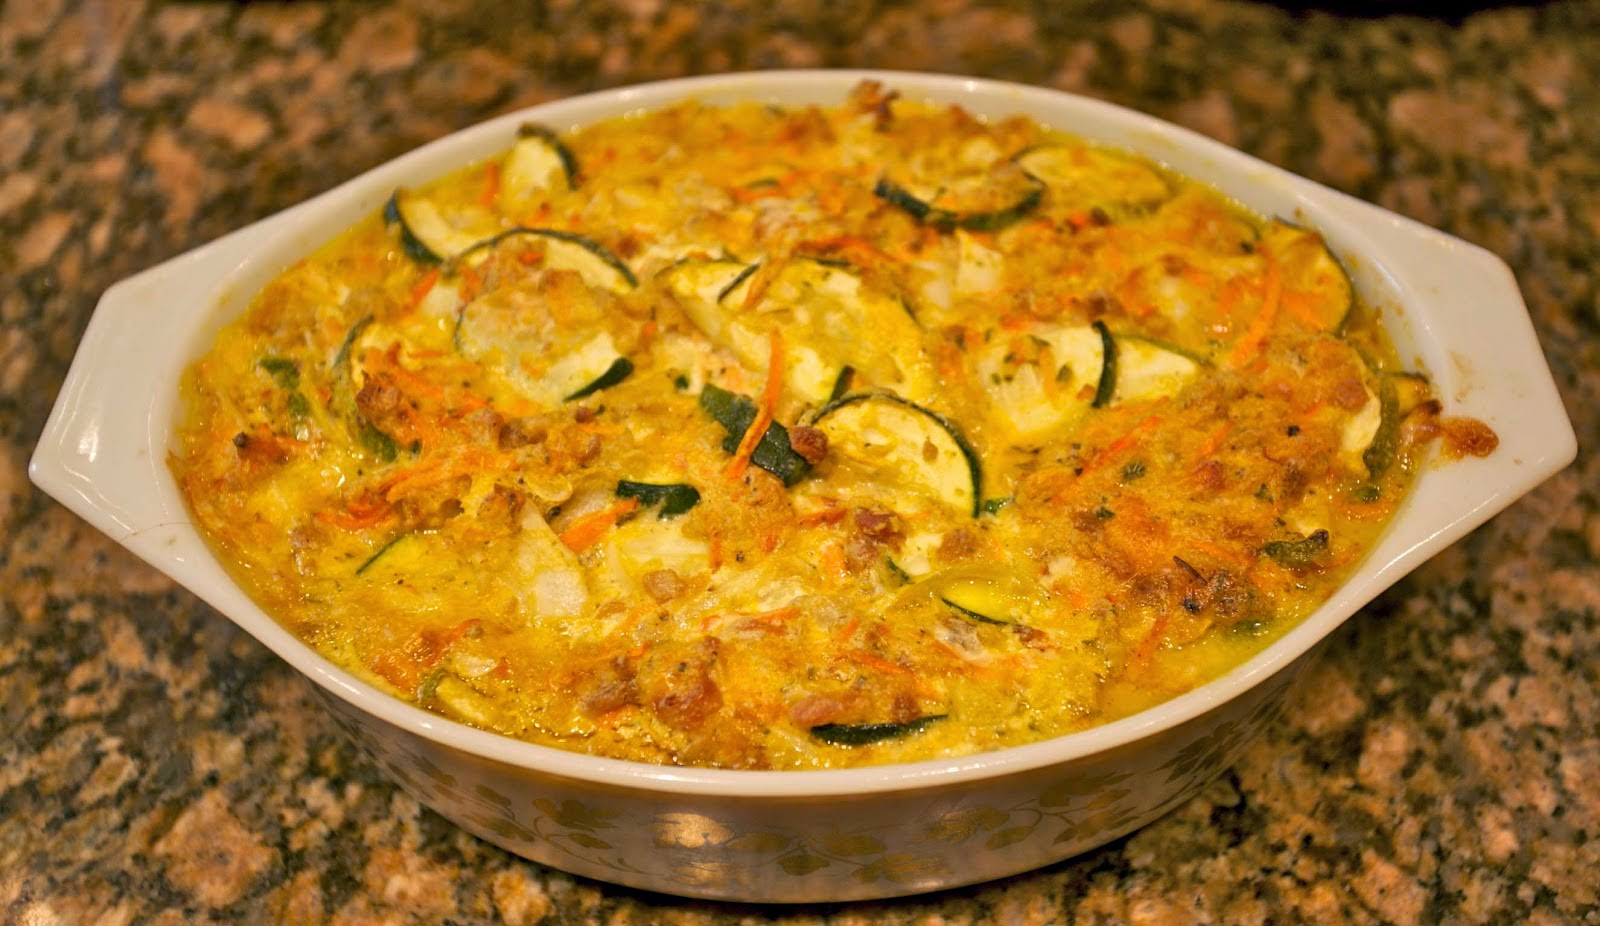 Maryland Crab & Vegetable Casserole